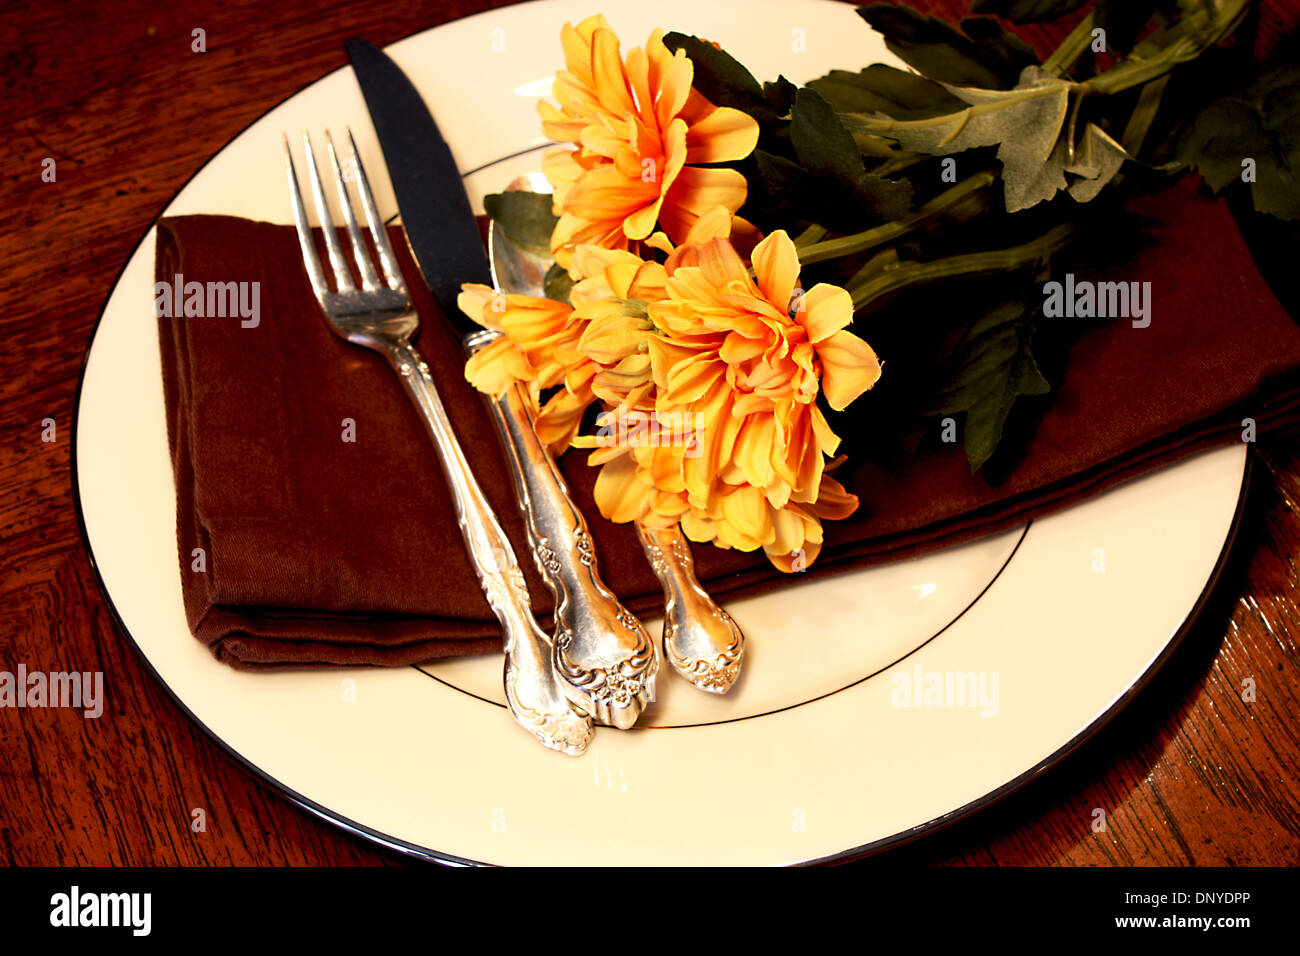 Formal Table Setting with napkin silverware and flowers on a brown table & Formal Table Setting with napkin silverware and flowers on a brown ...